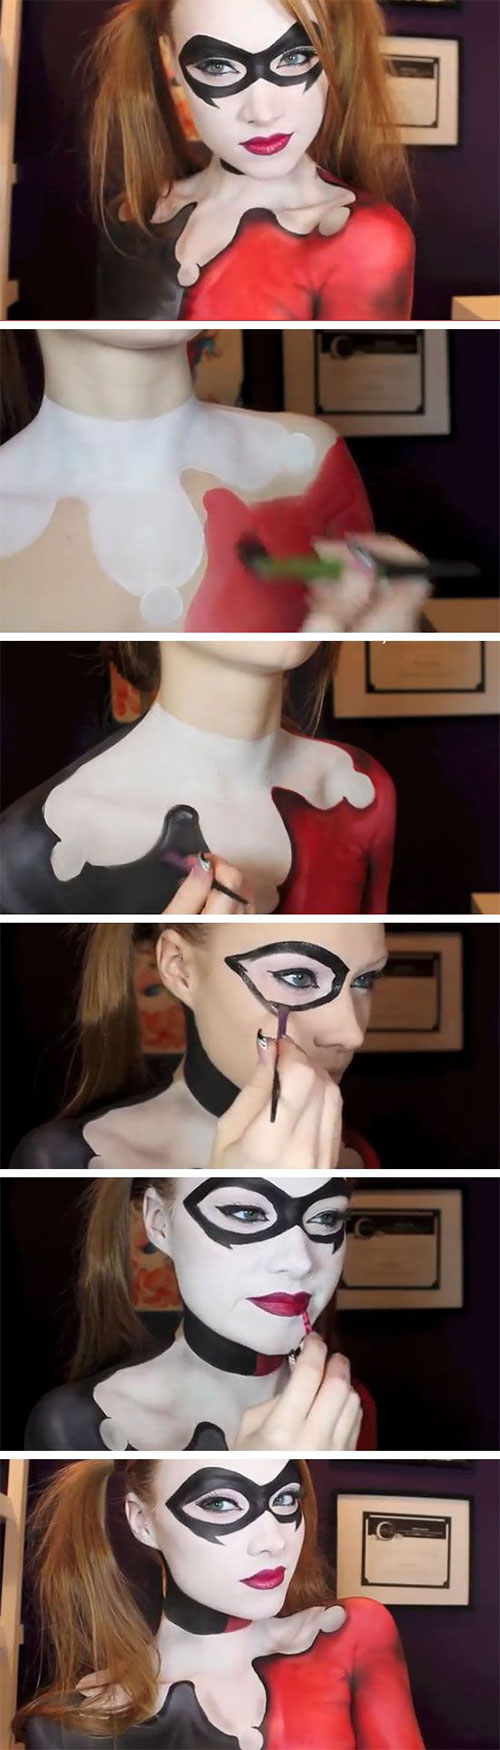 15-Step-By-Step-Halloween-Make-Up-Tutorials-For-Beginners-Learners-2014-7